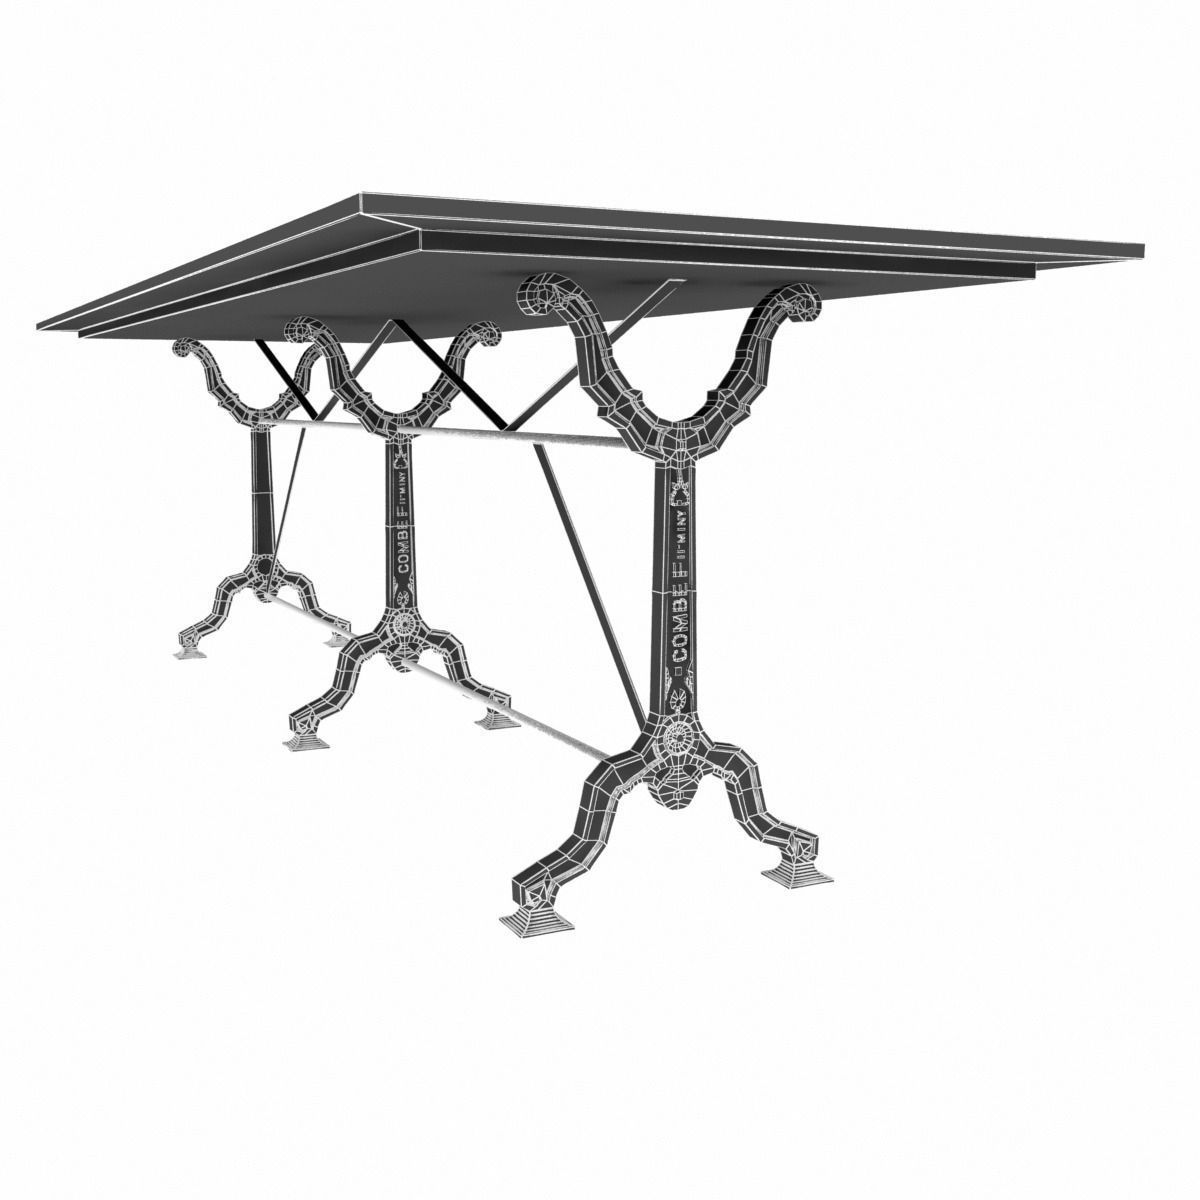 Restoration Hardware Factory Zinc Cast Iron Dining Tables  : restoration hardware factory zinc cast iron dining tables 3d model max obj fbx from www.cgtrader.com size 1200 x 1200 jpeg 72kB